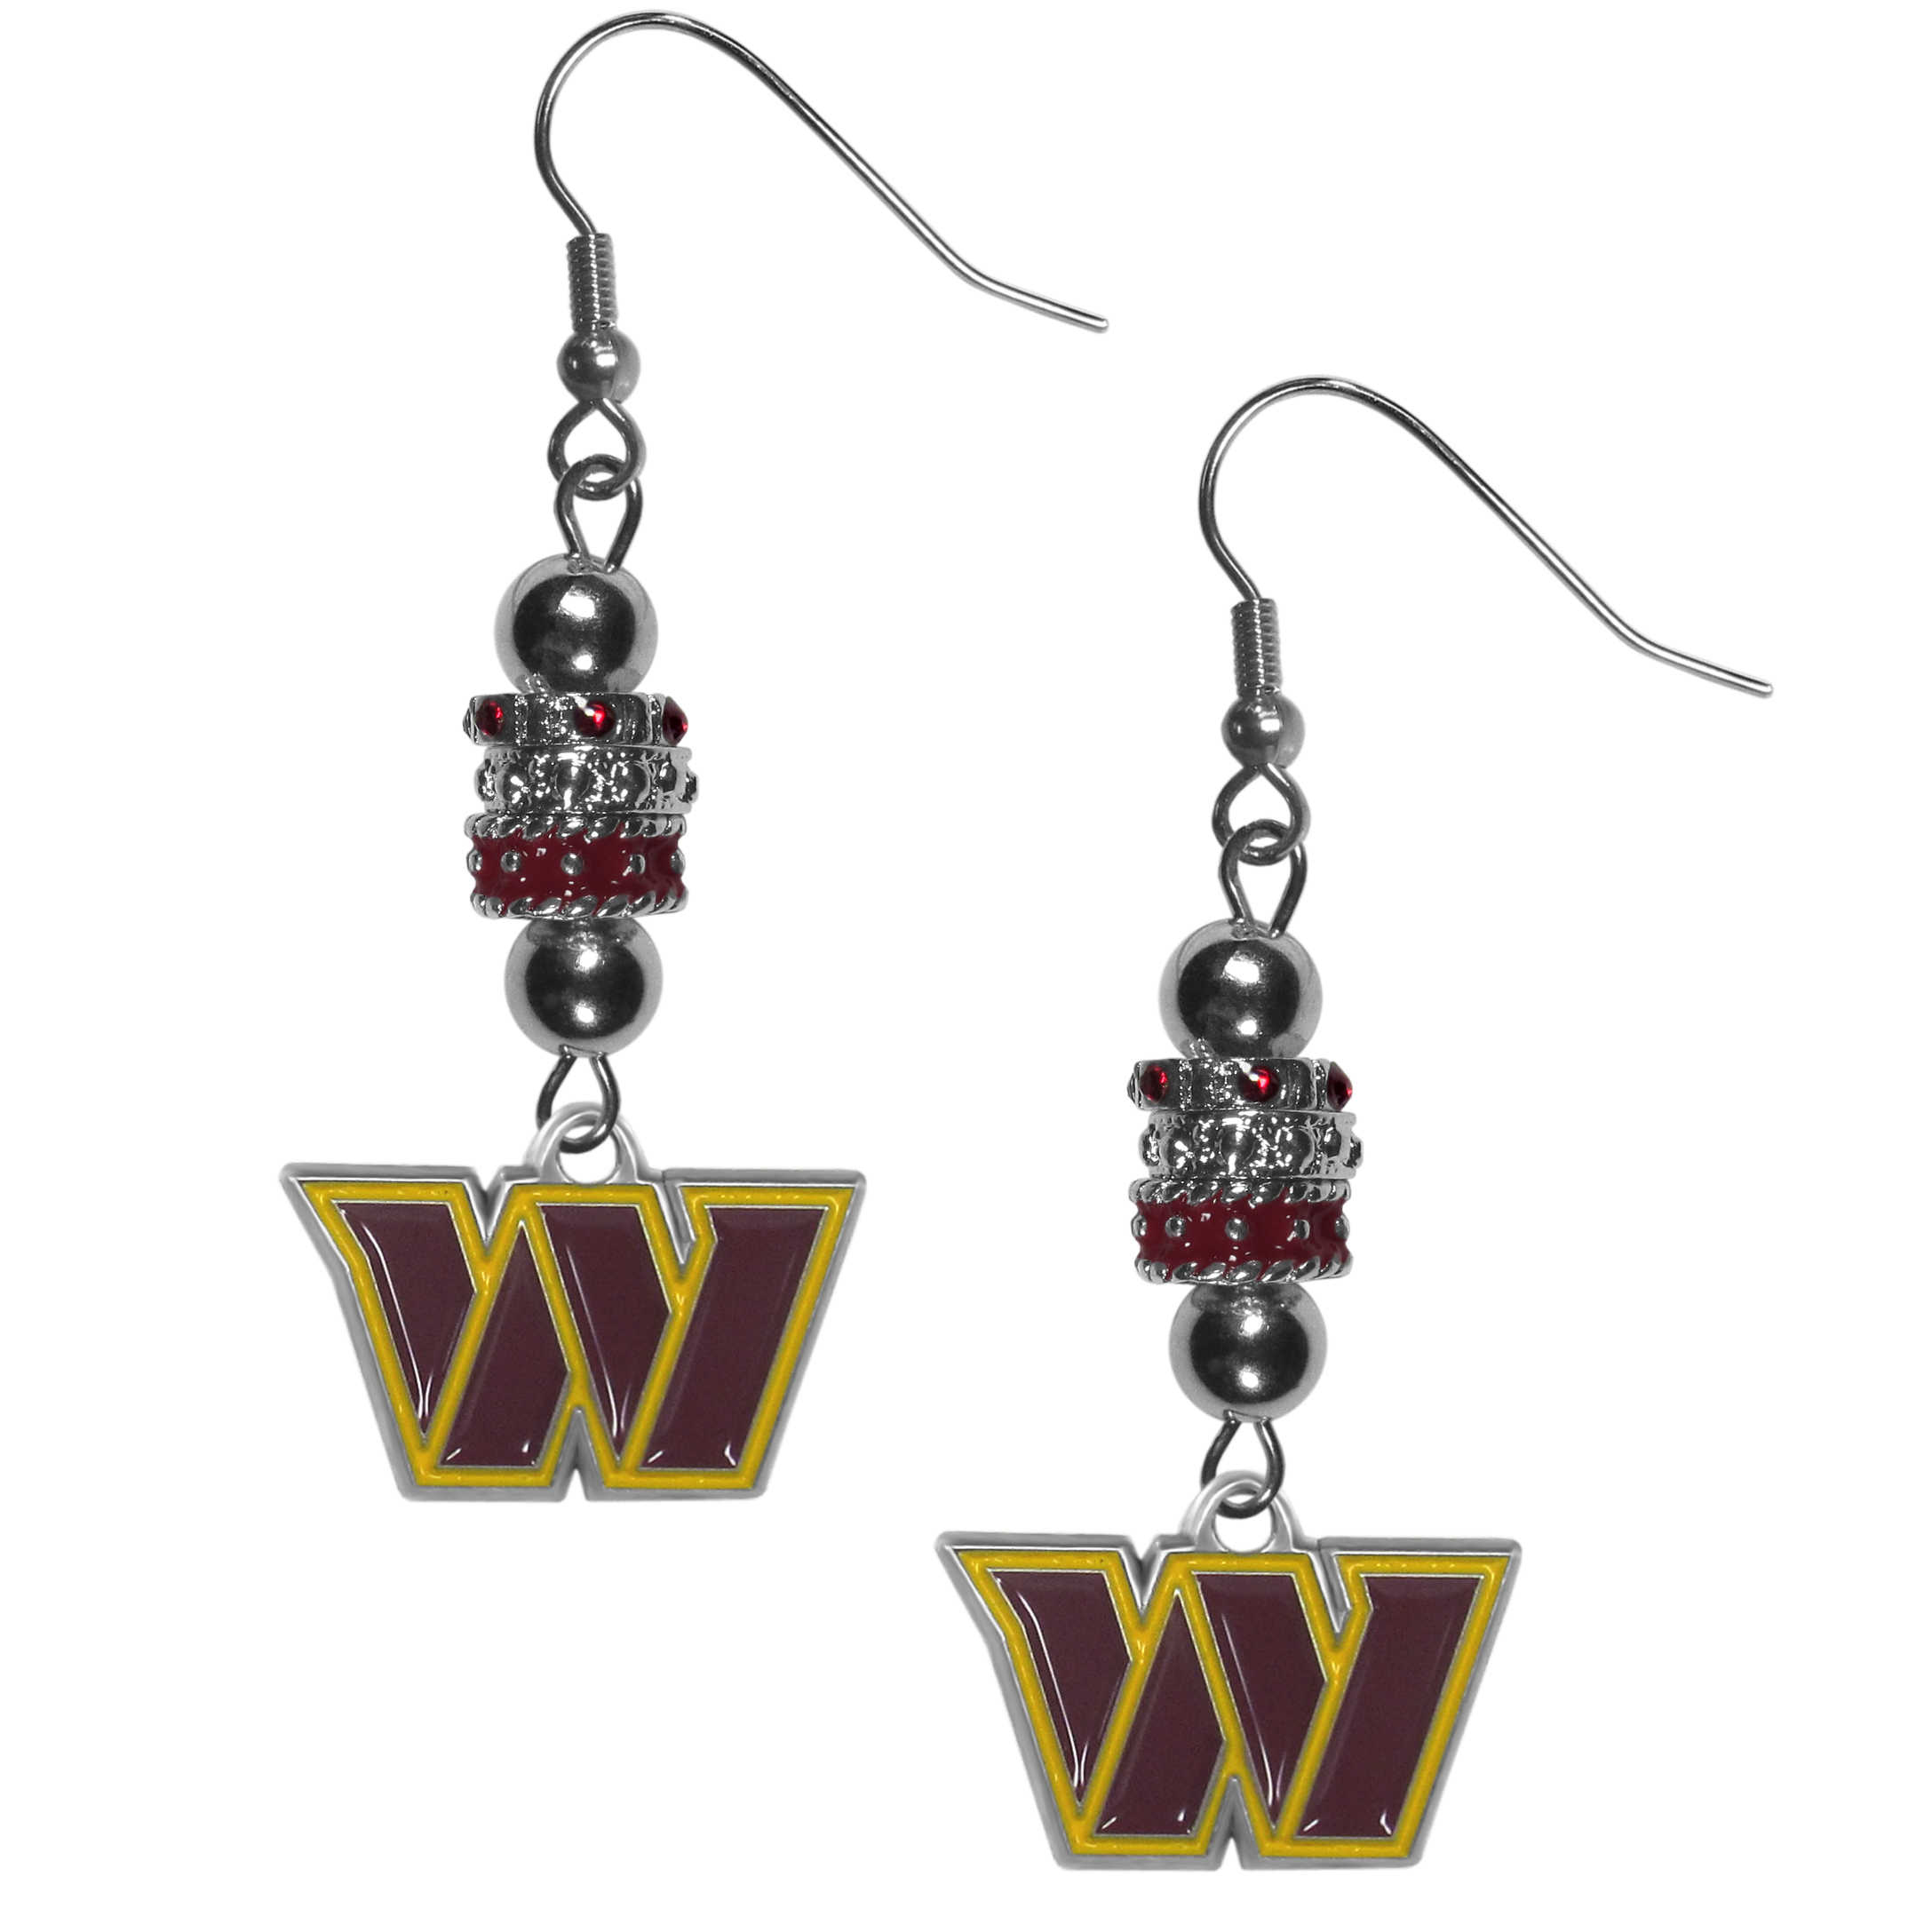 Washington Redskins Euro Bead Earrings - These beautiful euro style earrings feature 3 euro beads and a detailed Washington Redskins charm on hypoallergenic fishhook posts.